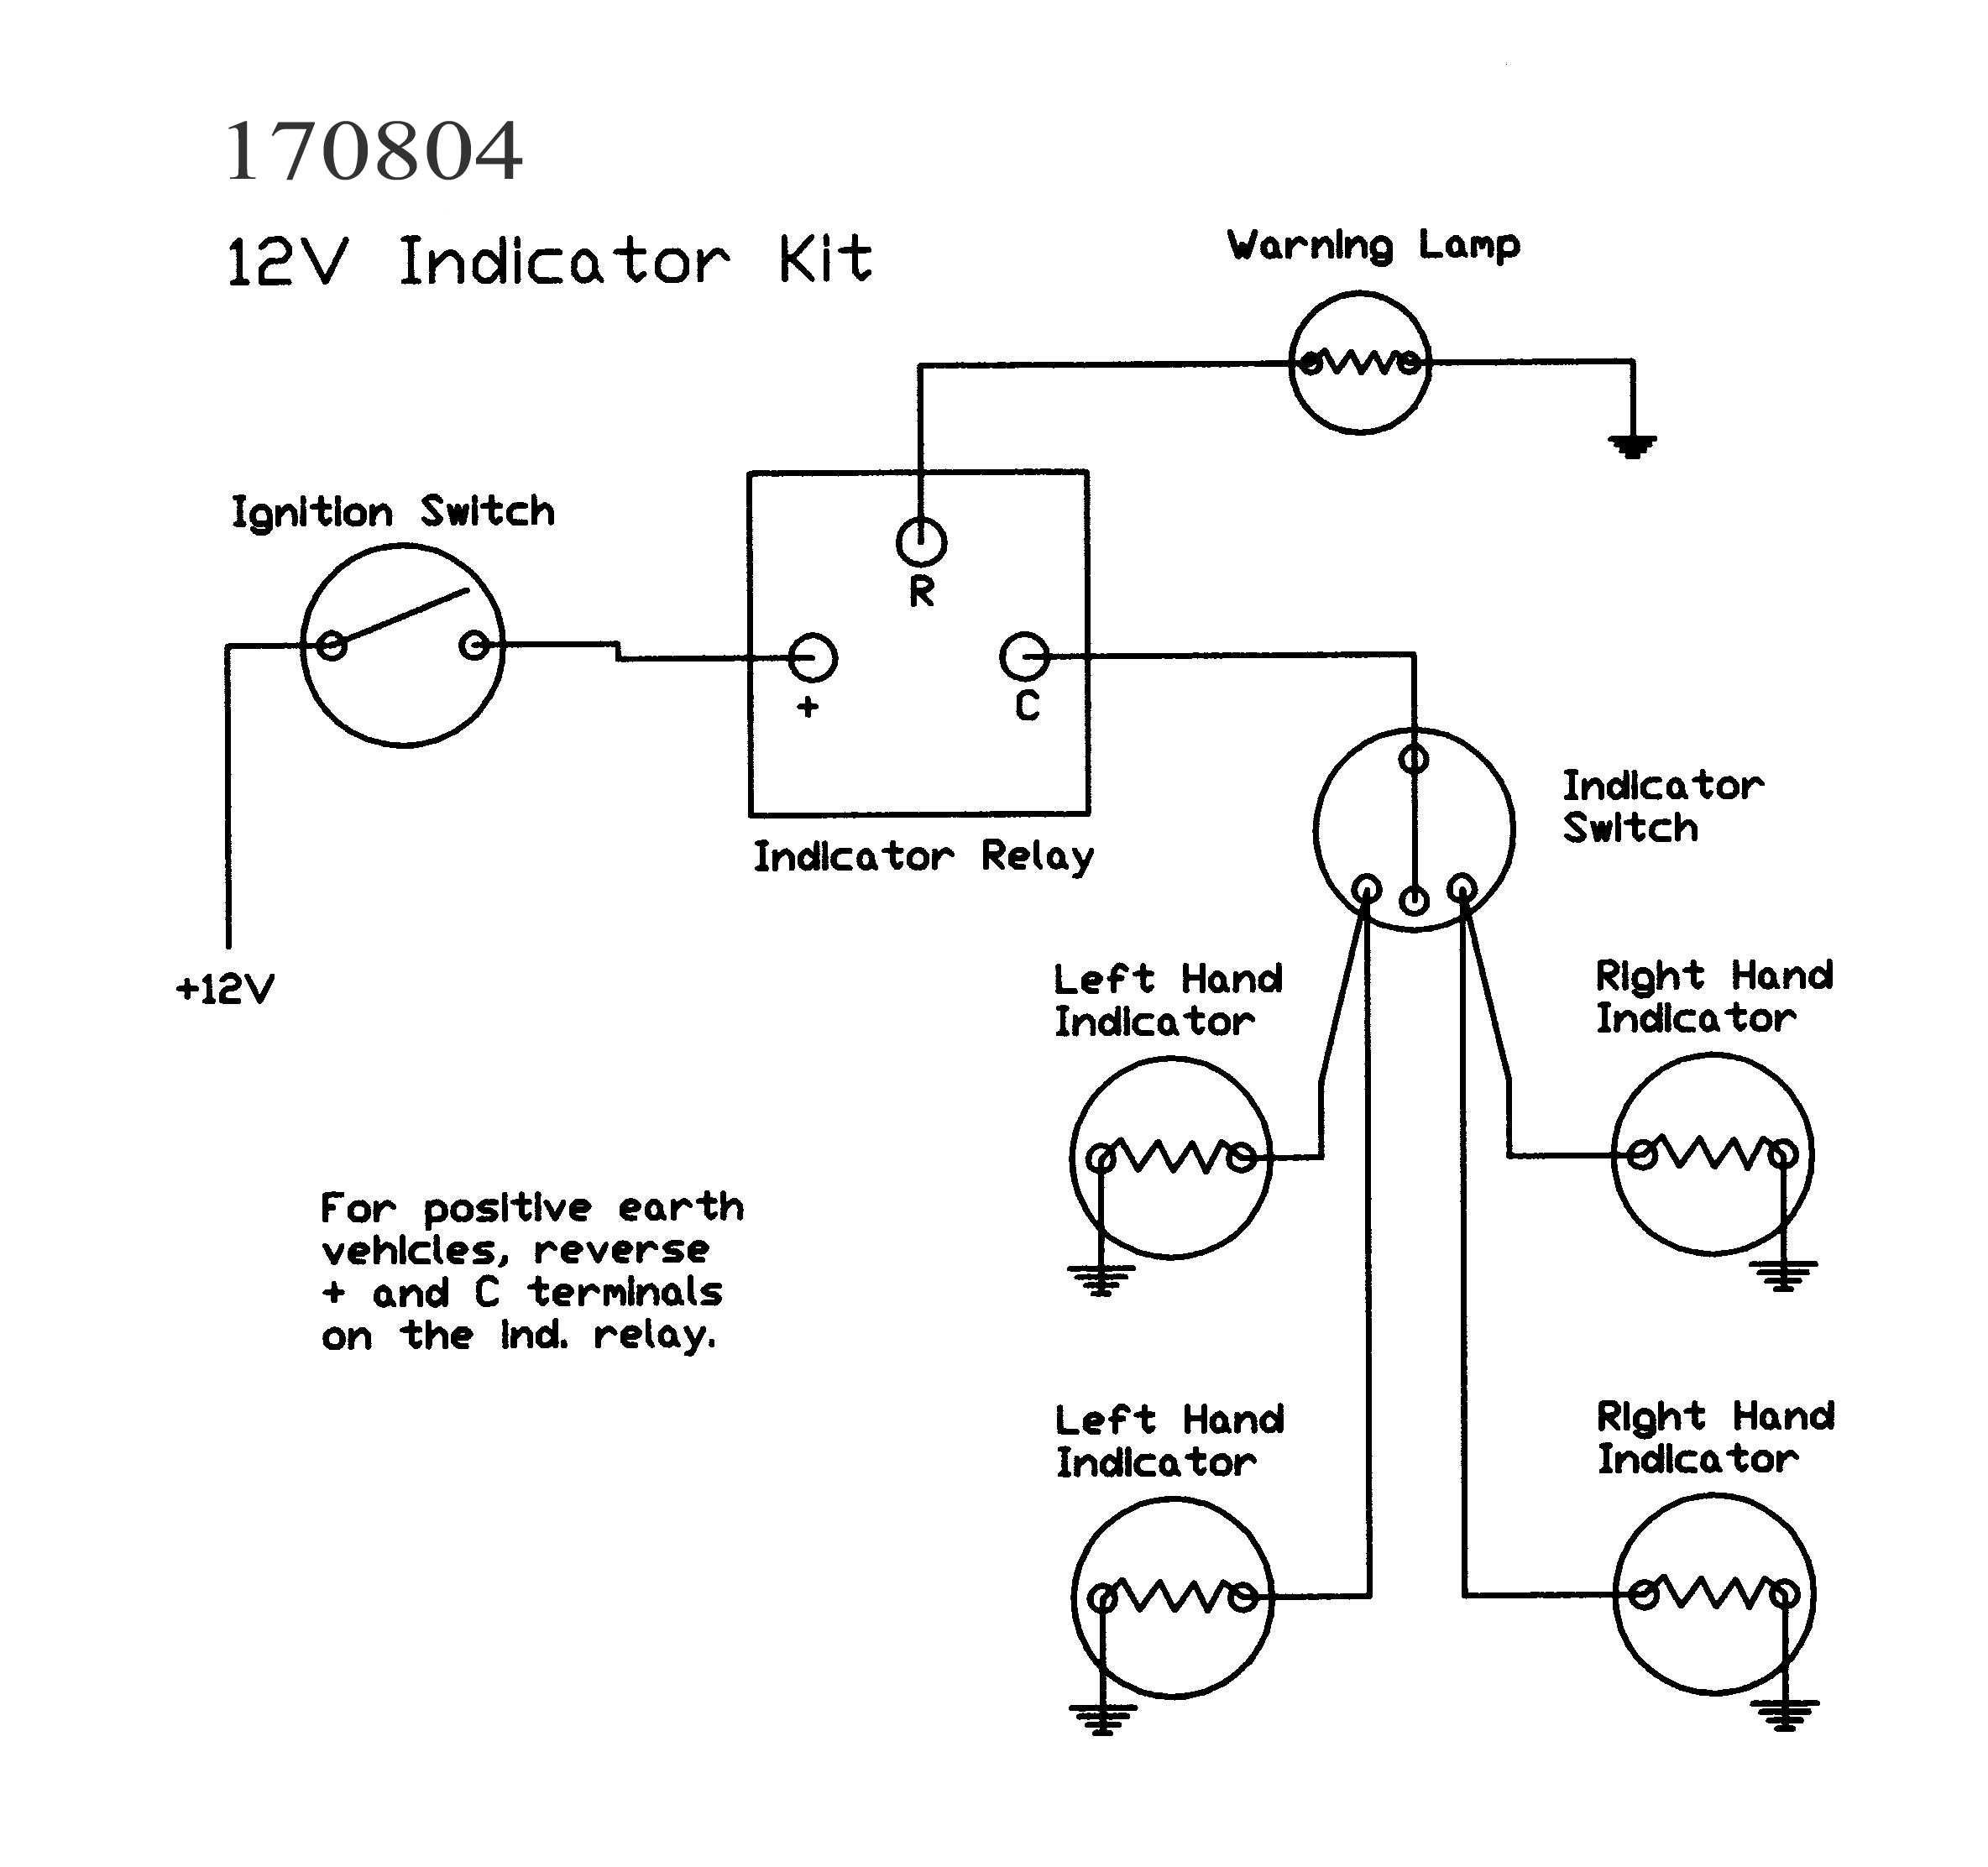 Classic Mini Wiring Diagram Indicators : Indicator kits without lamps